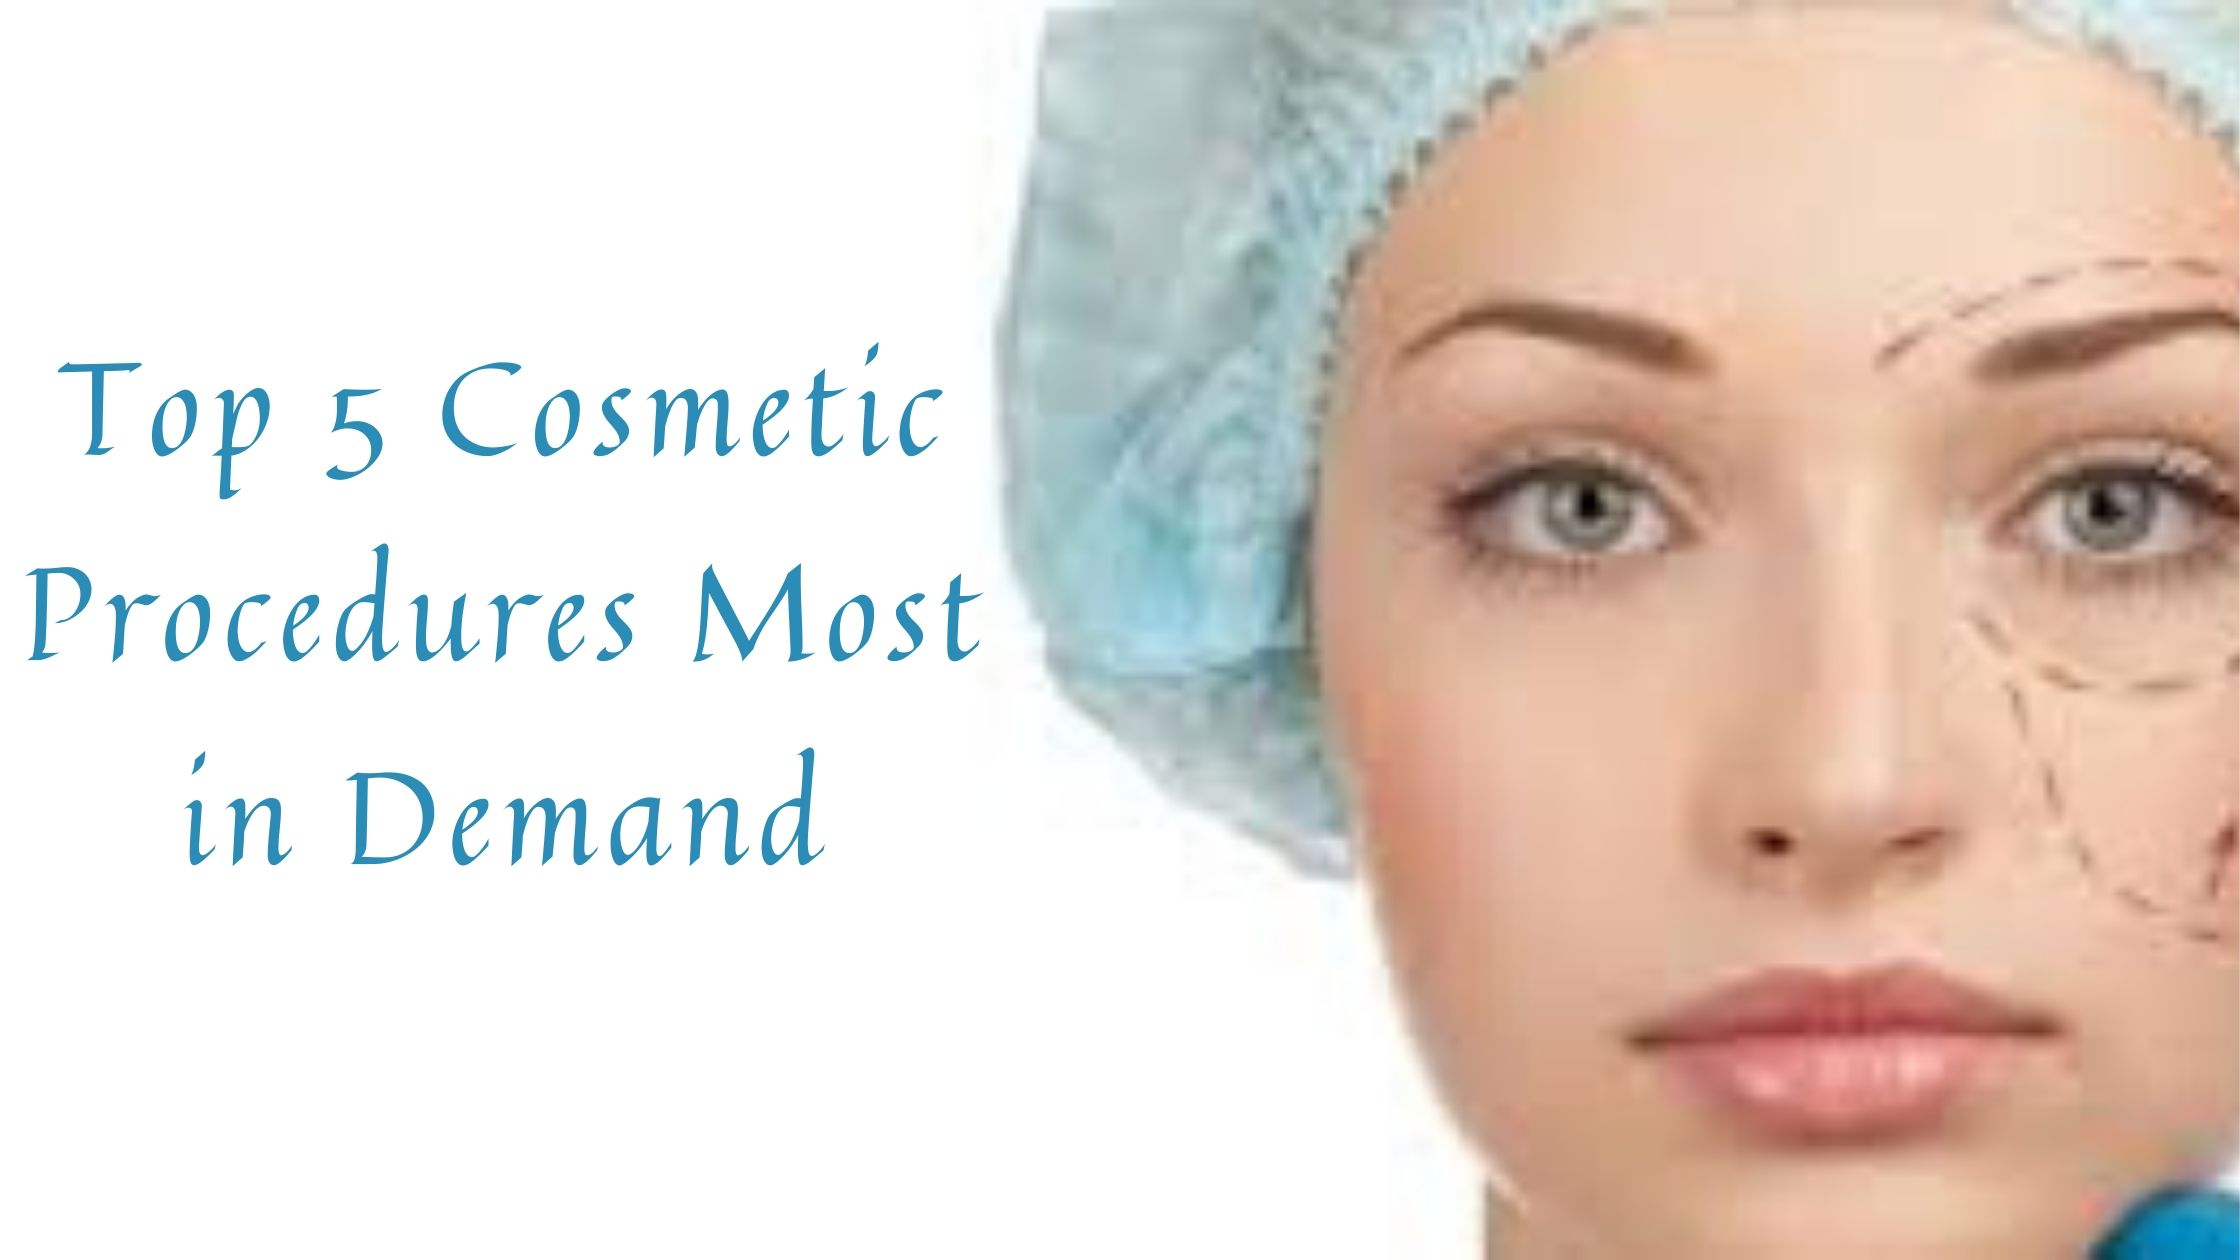 Cosmetic Procedures, Top 5 Cosmetic Procedures Most in Demand